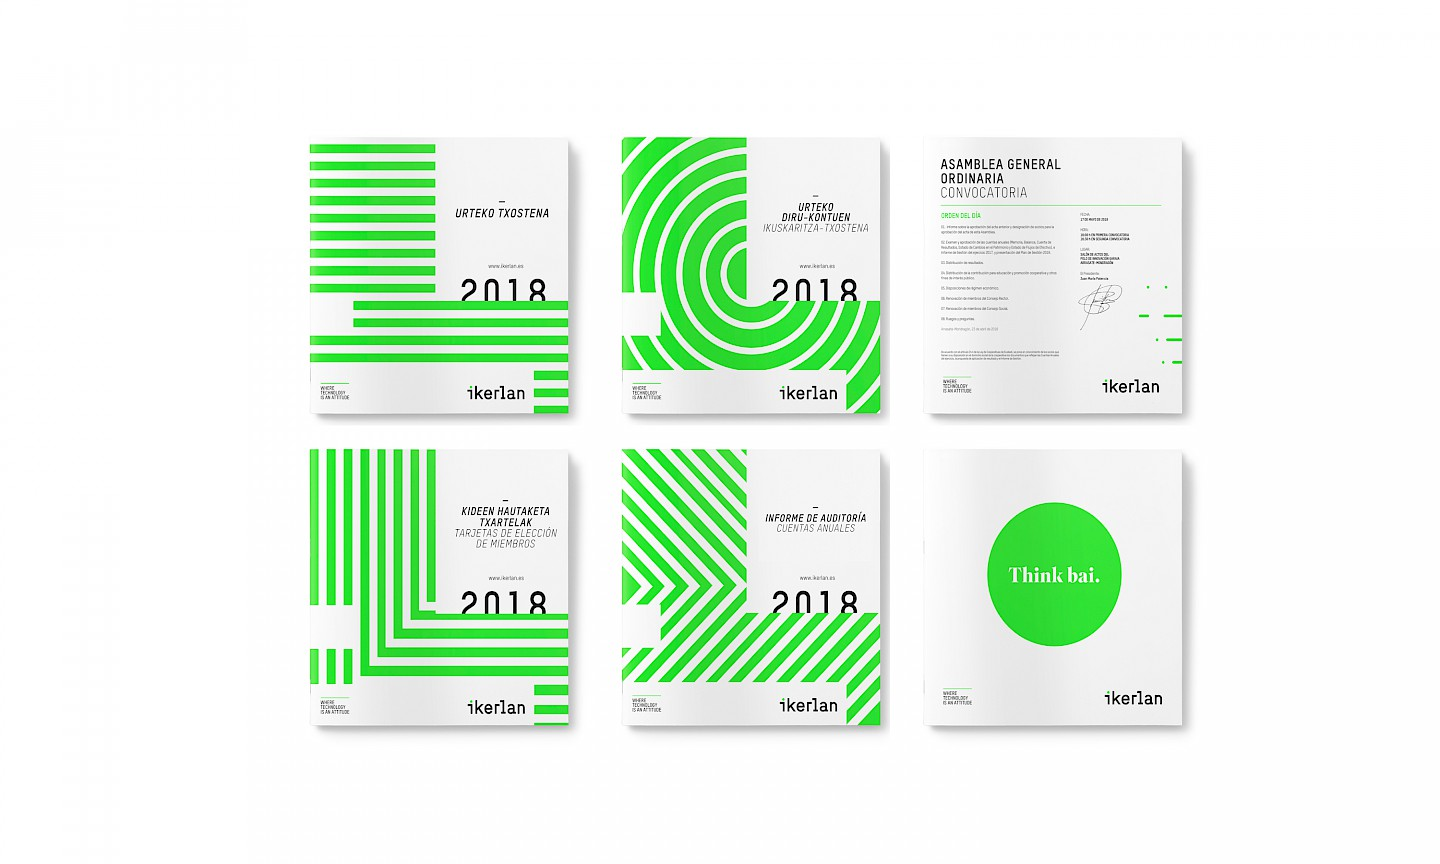 technology move editorial_3 branding ikerlan design